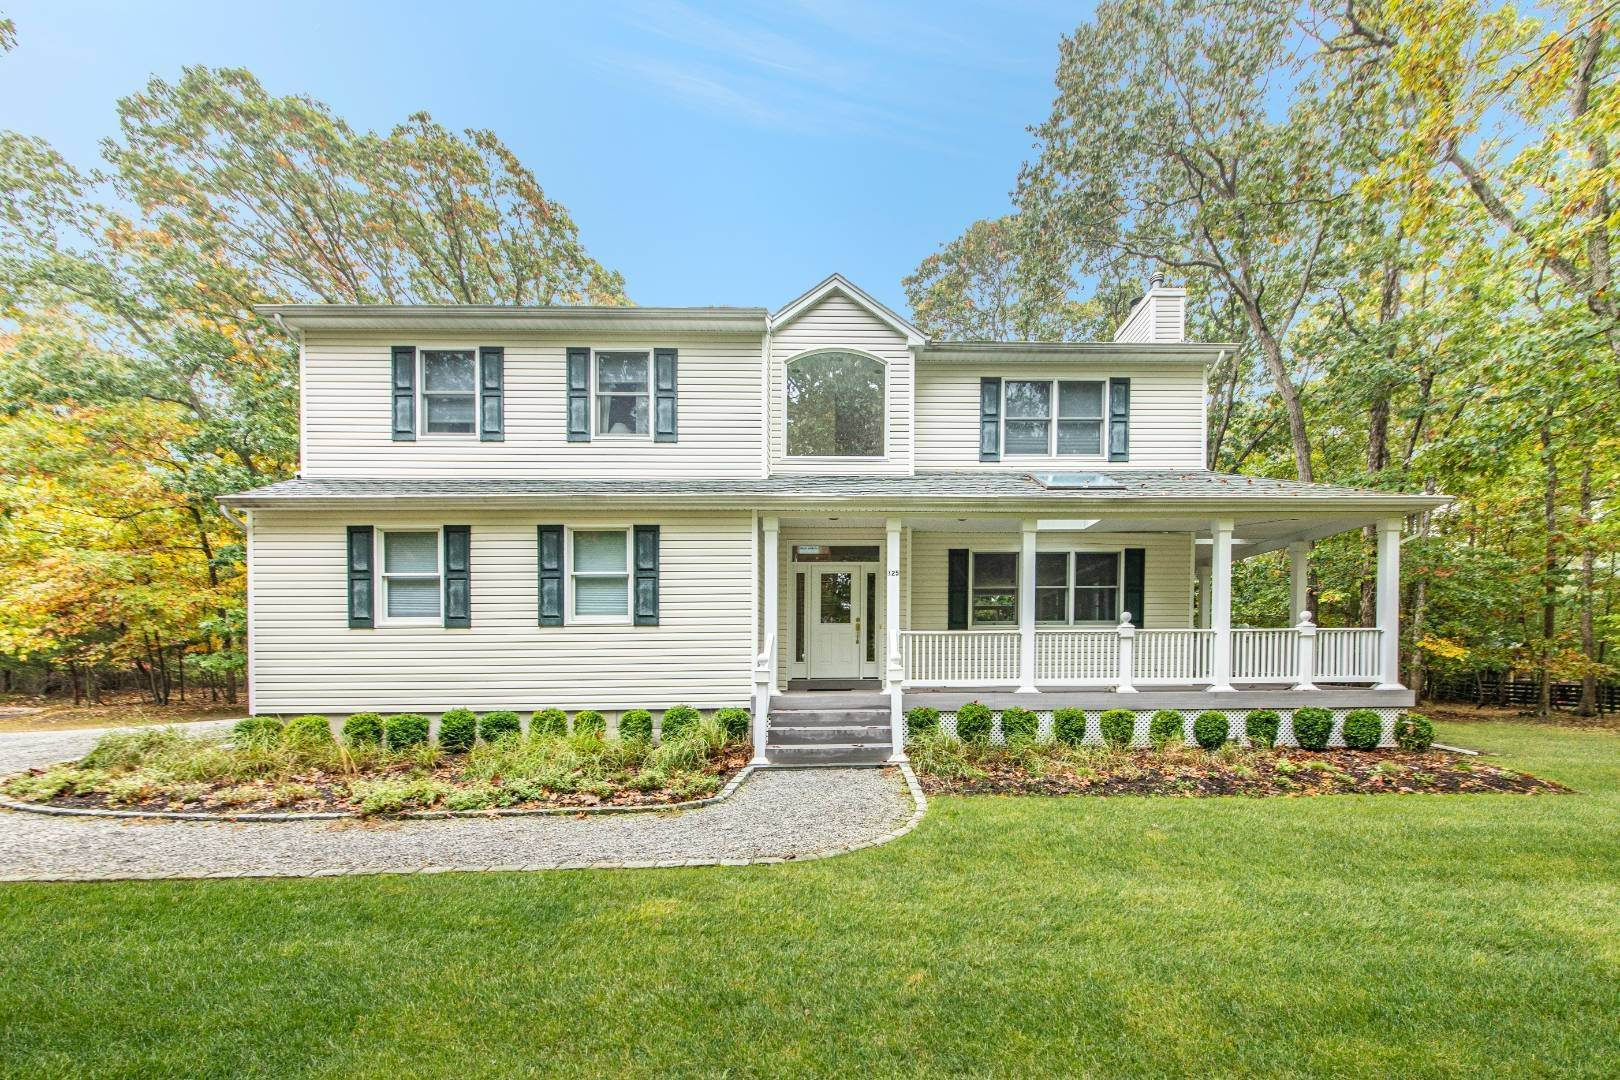 Single Family Home for Sale at Turnkey In Clearwater Beach 125 Kings Point Road, East Hampton, NY 11937